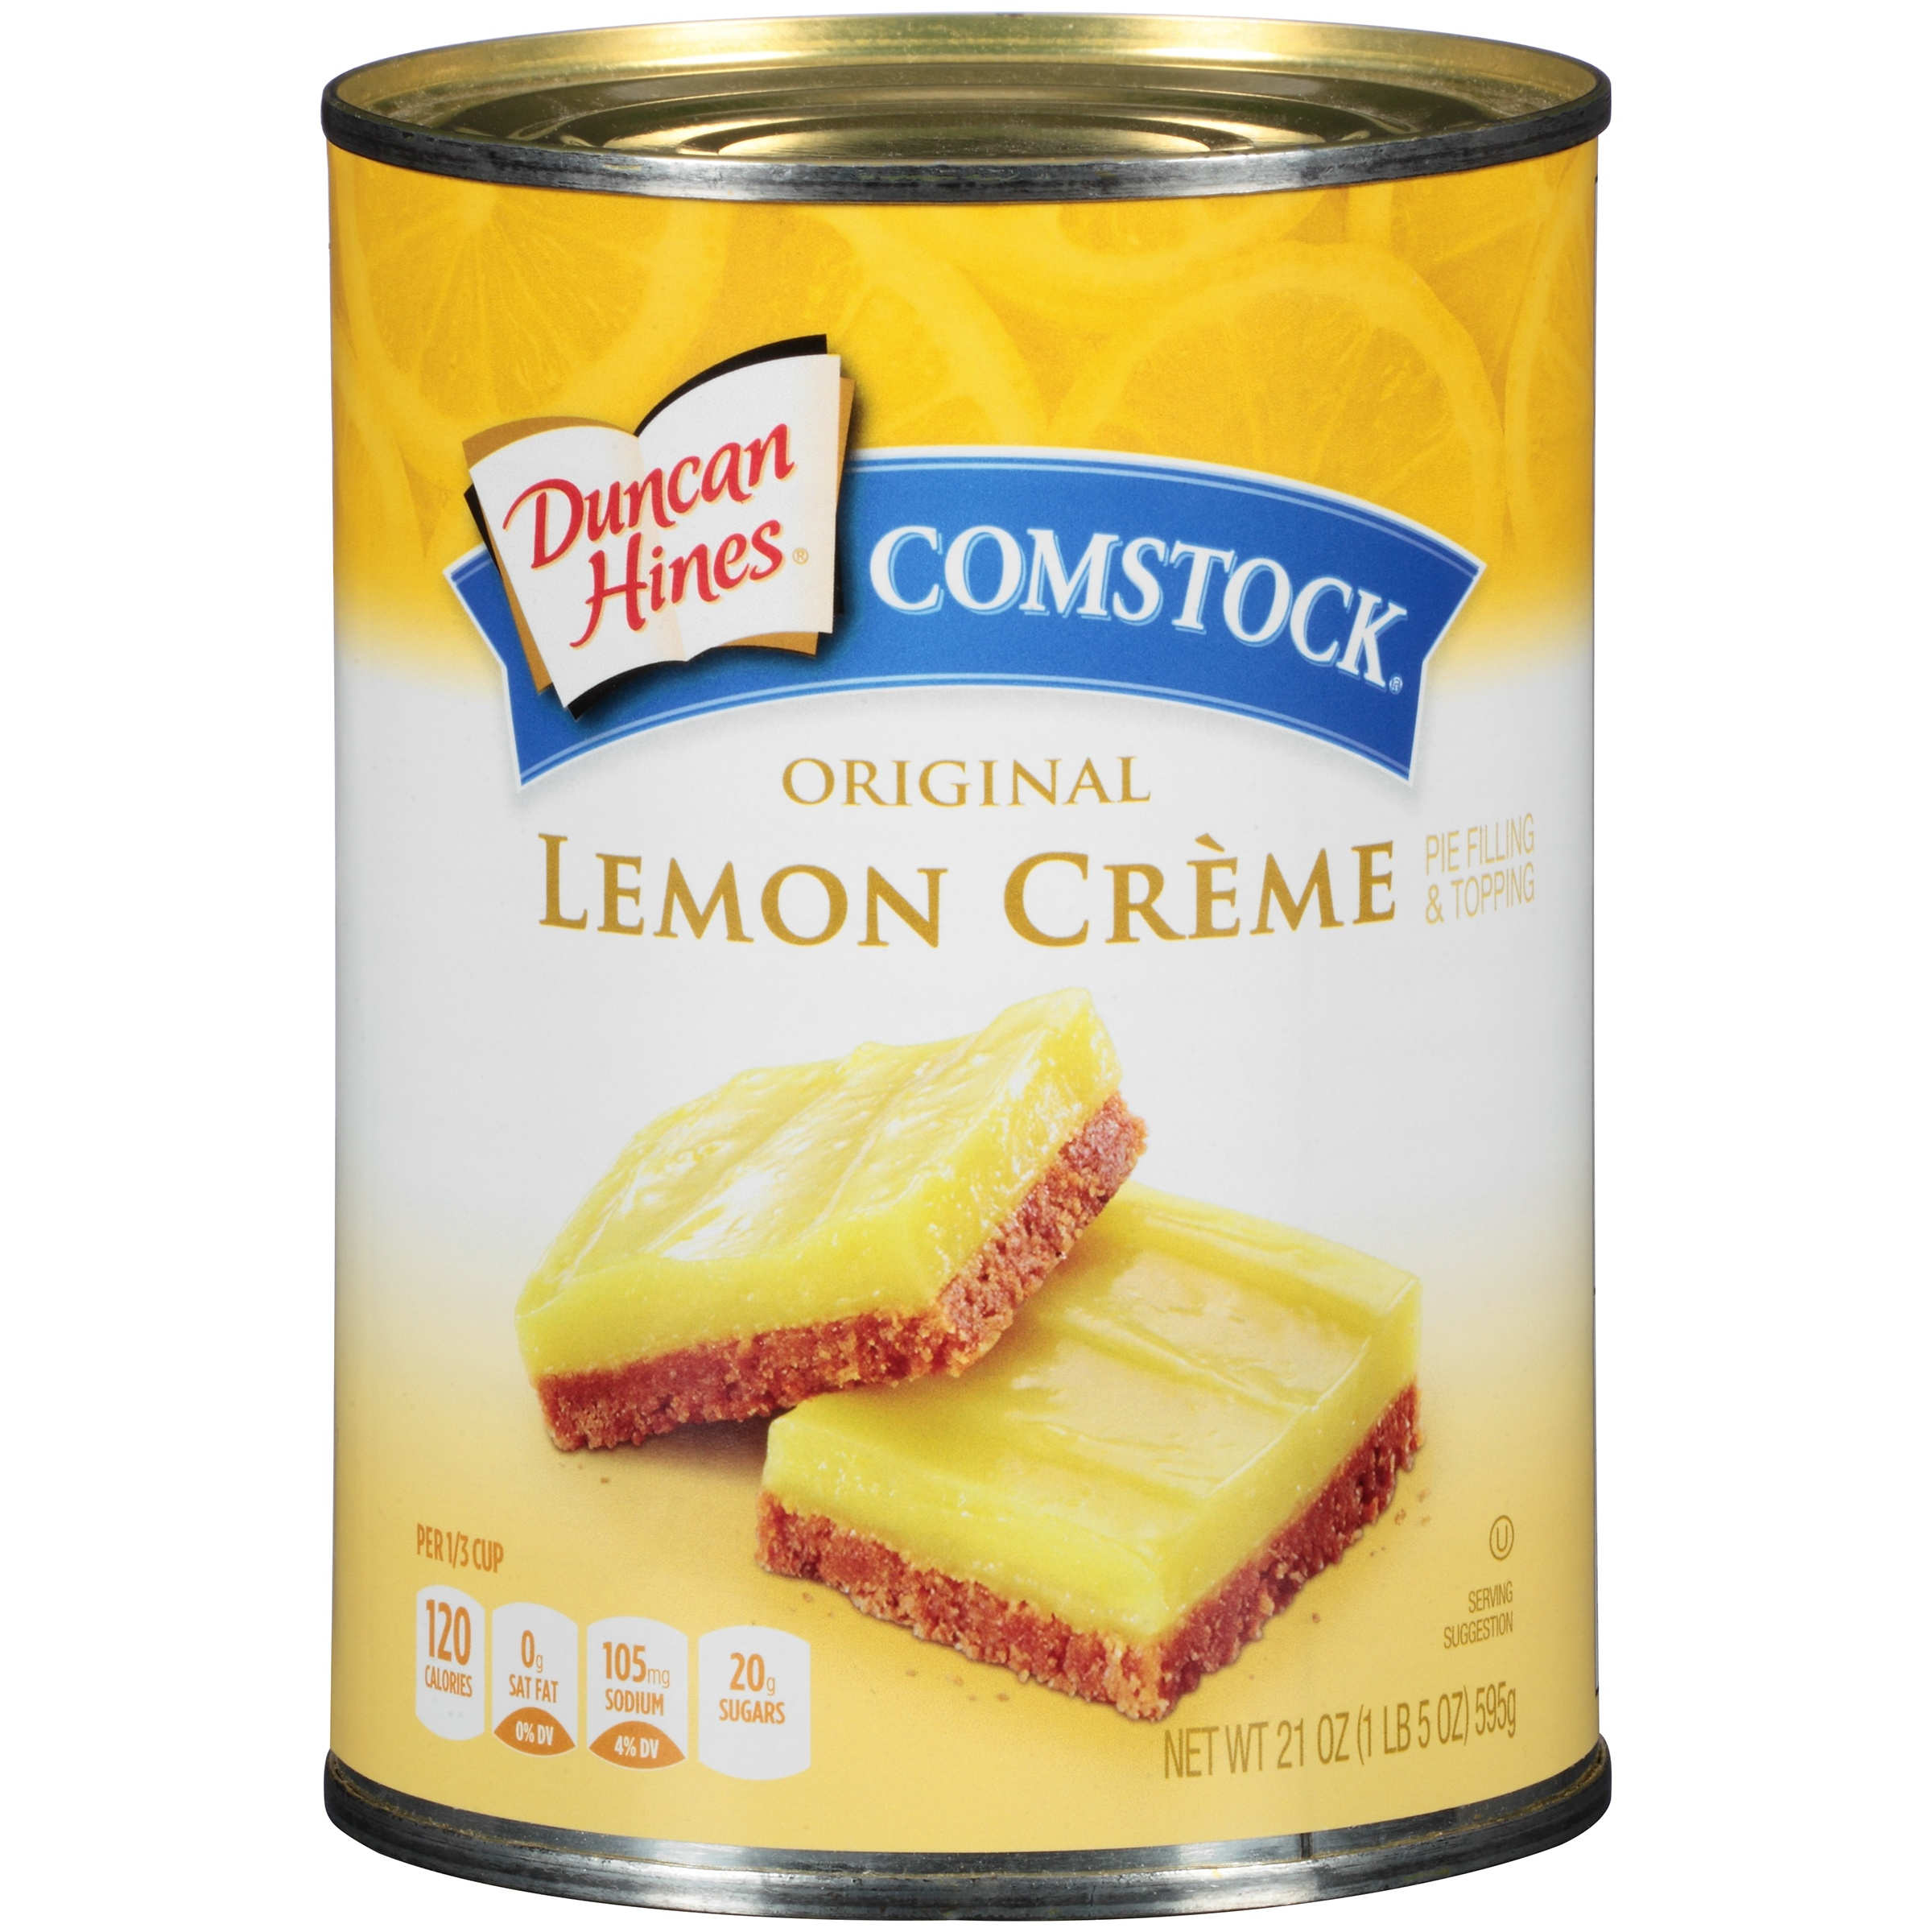 Duncan Hines Comstock Original Lemon Crème Pie Filling & Topping, 21 oz by Pinnacle Foods Group LLC